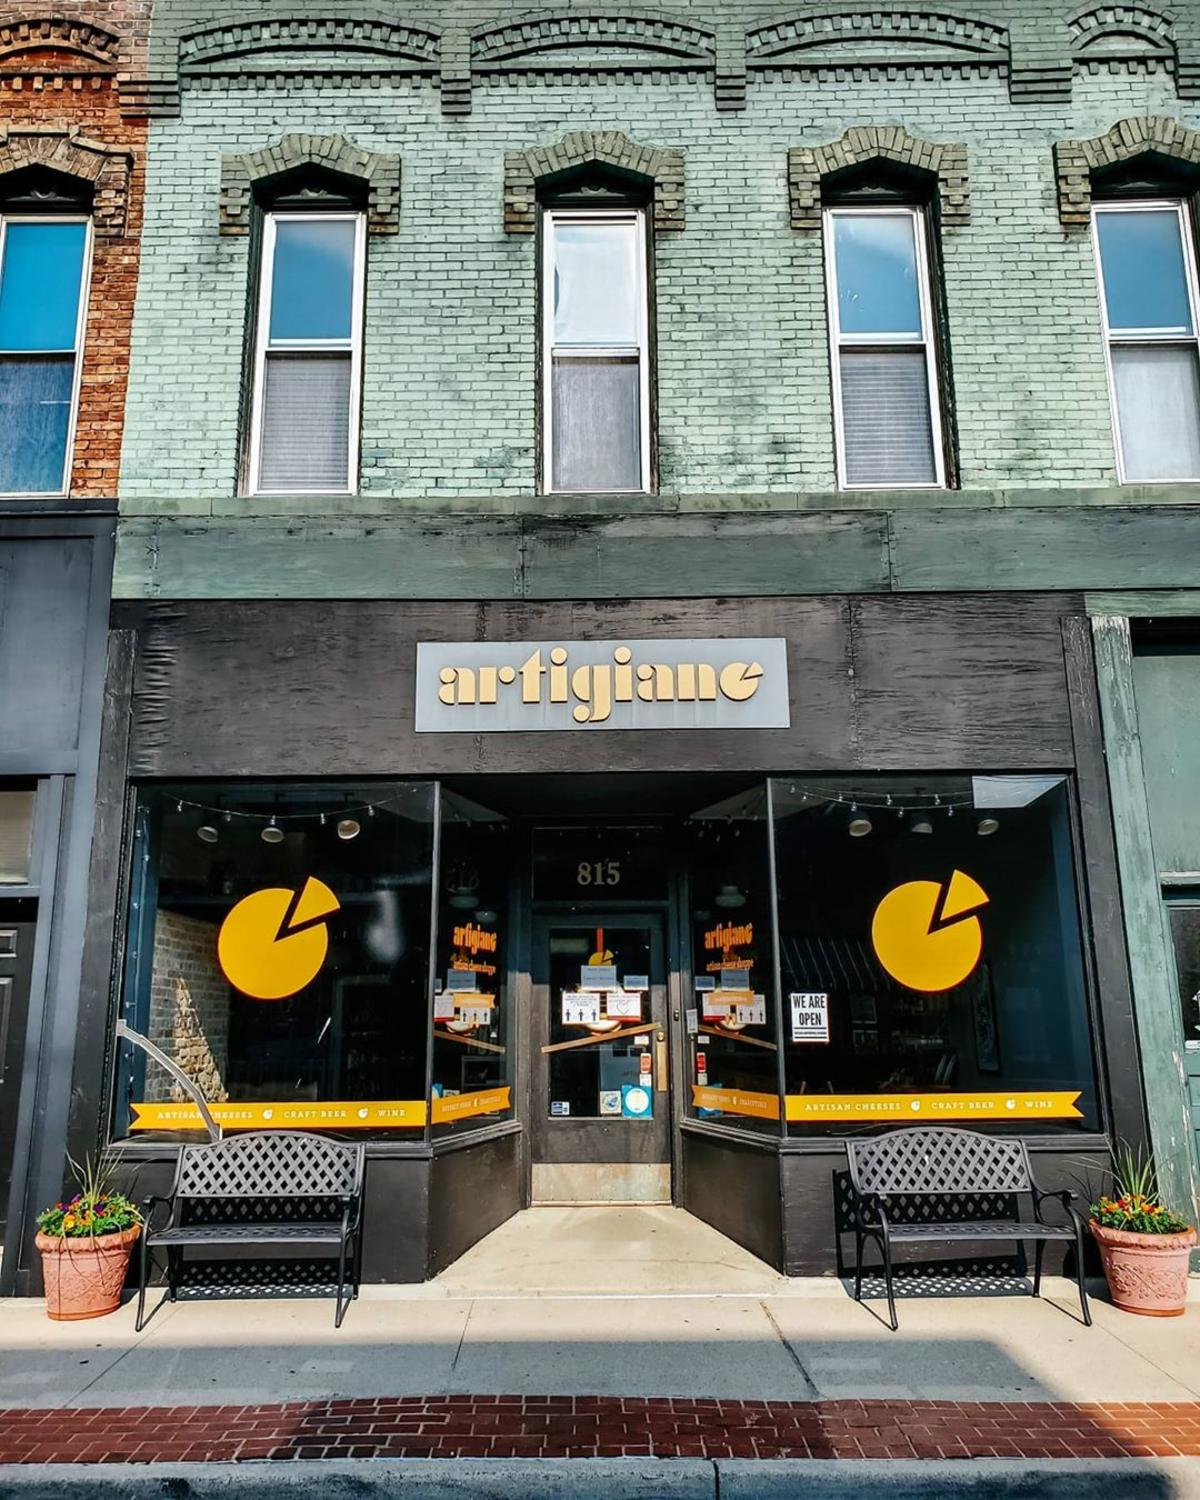 Colorful storefront view of Artigiano Artisan Cheese Shoppe building in Bay City